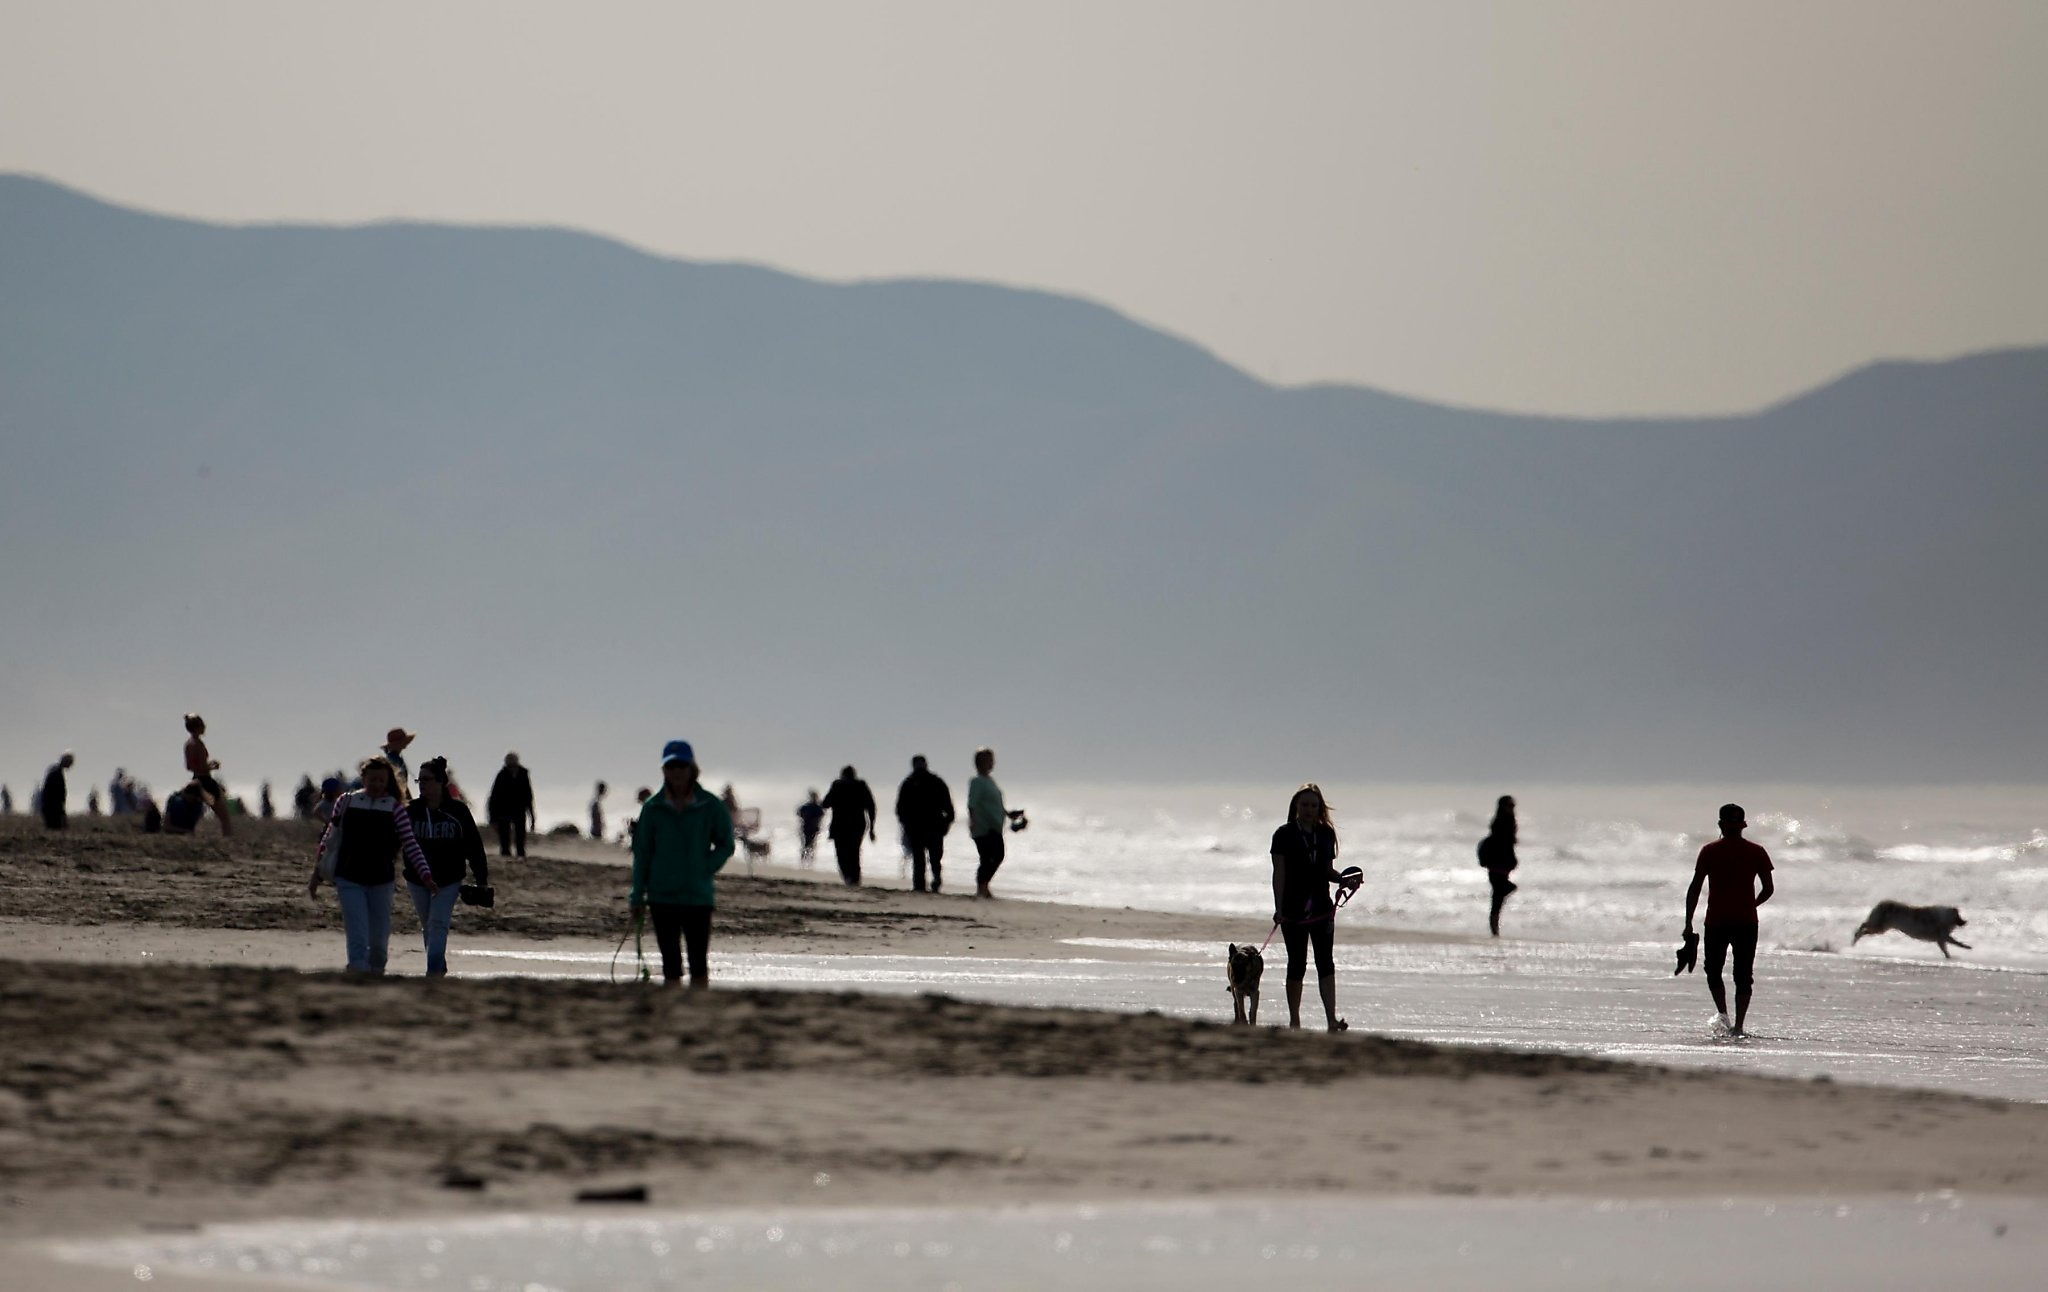 Temperatures in the 70s coming to Bay Area on Monday | San Francisco Gate